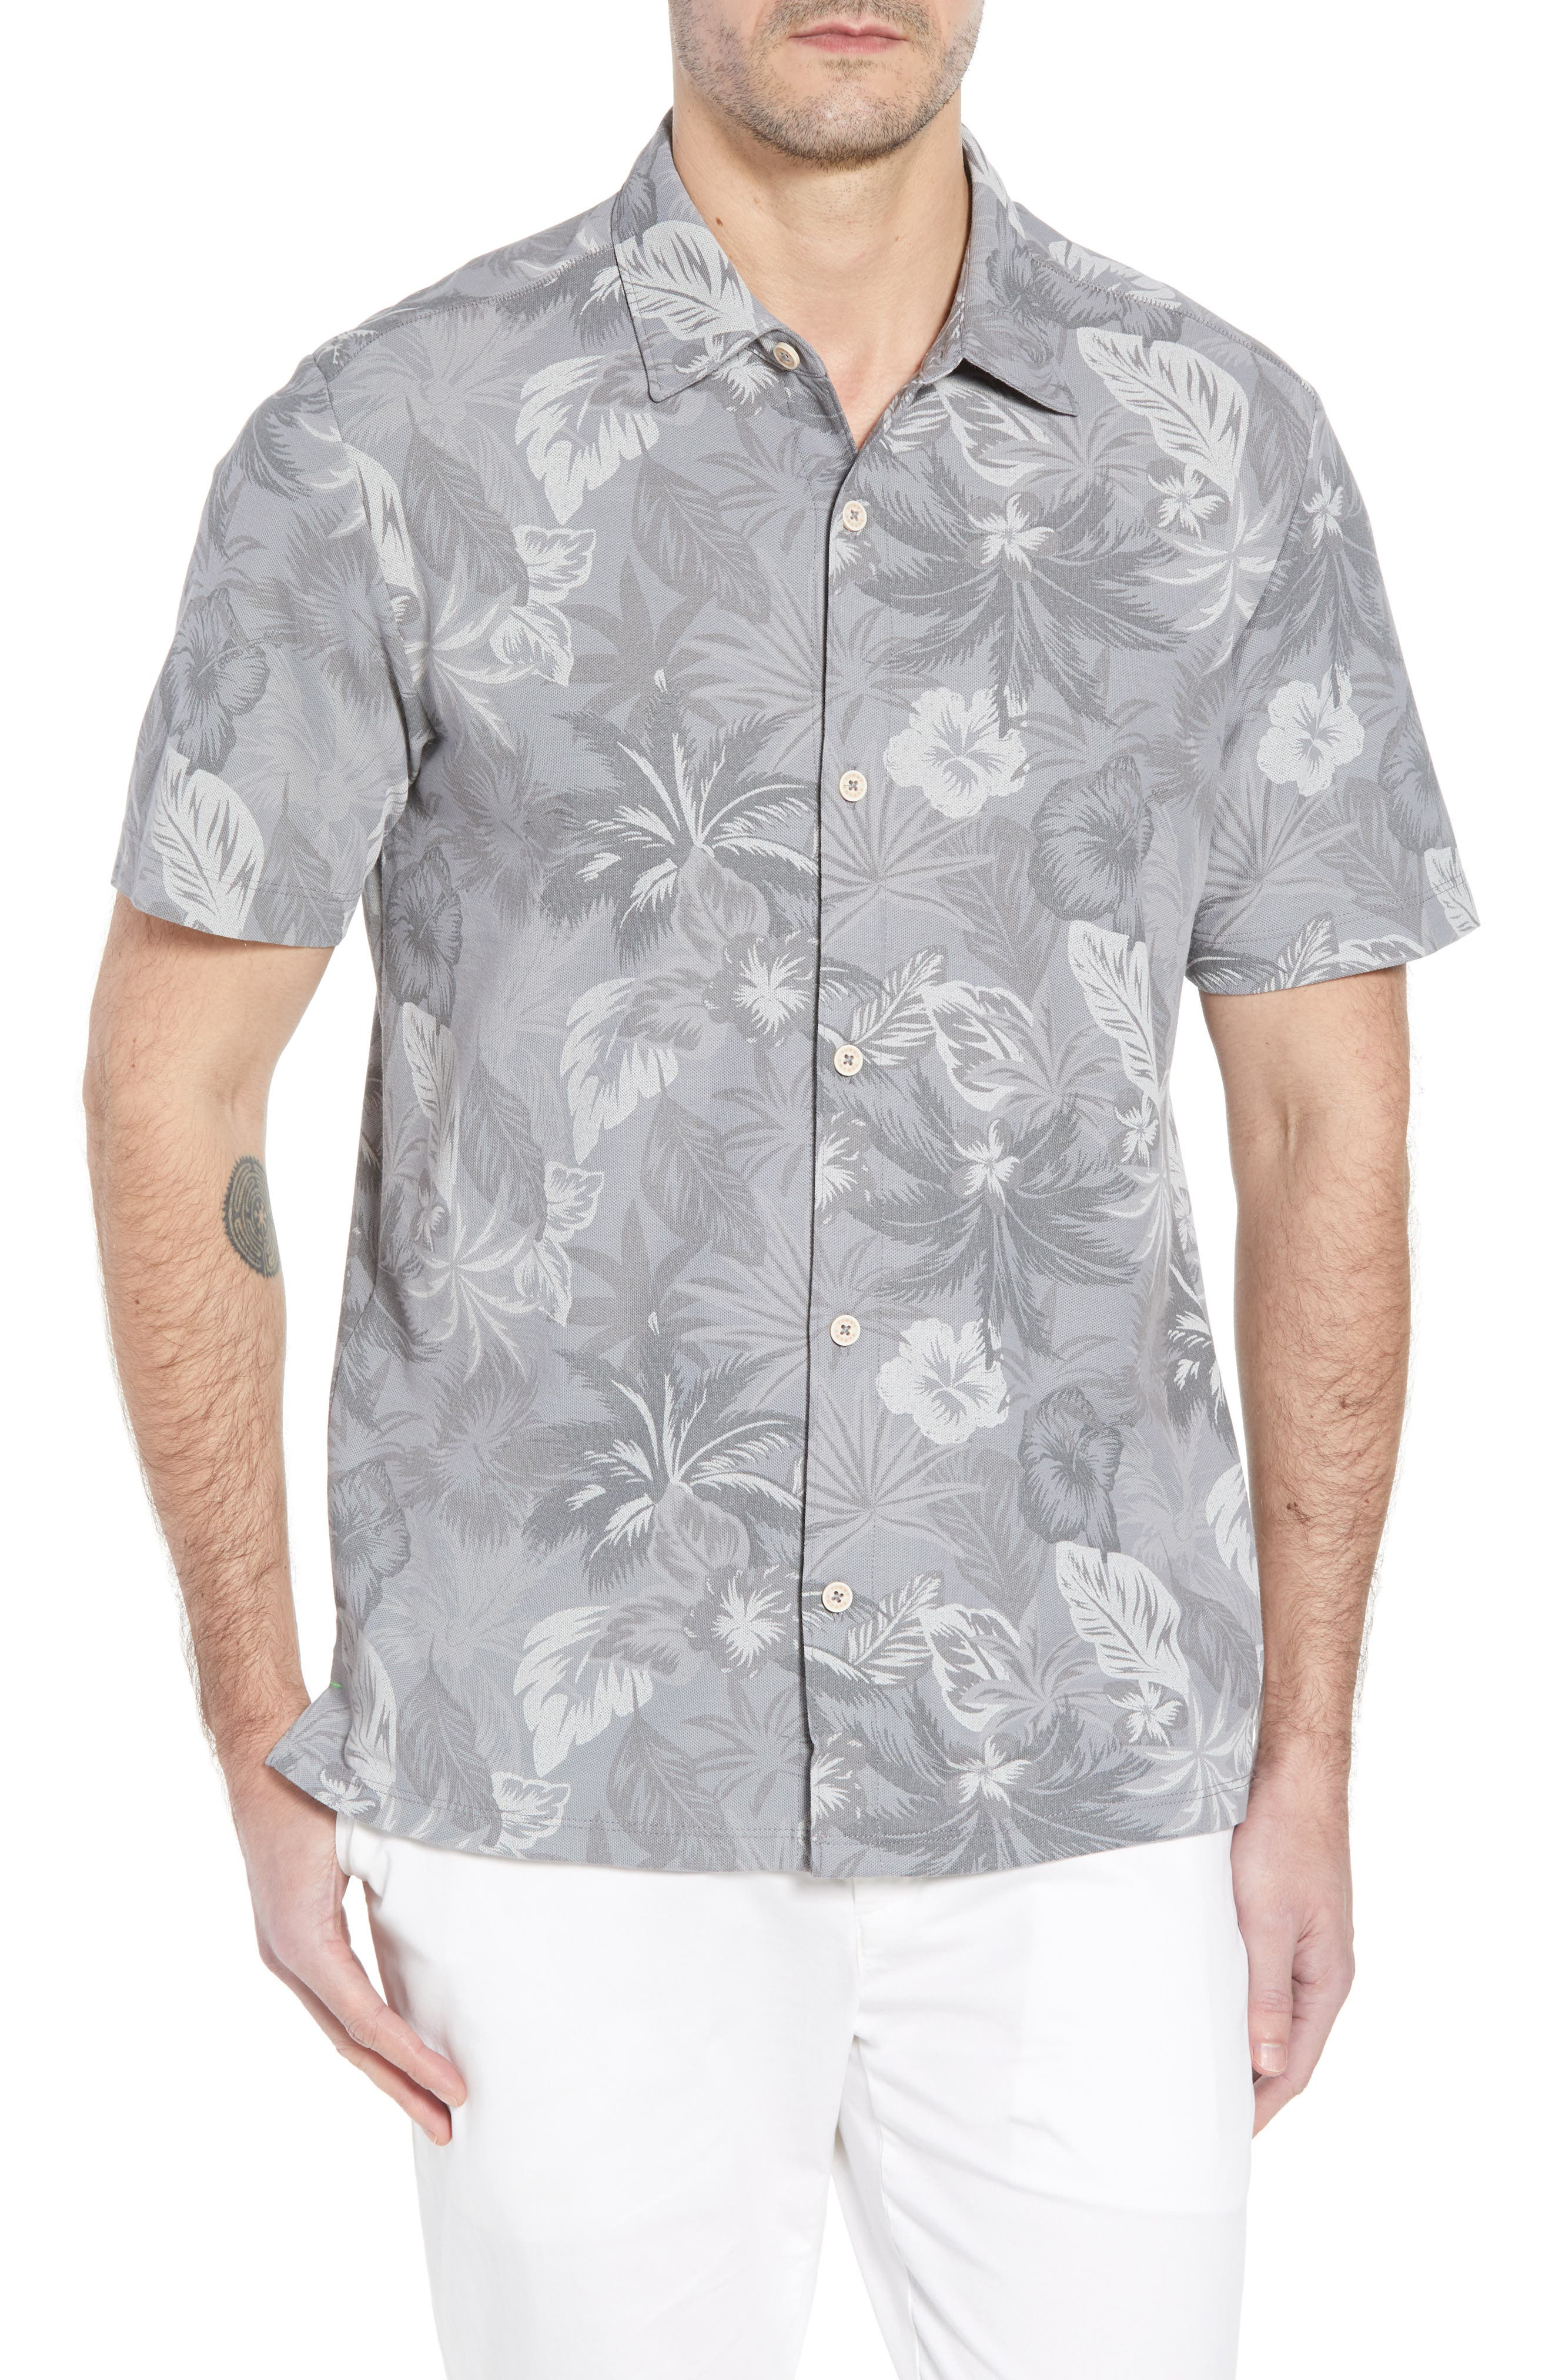 Fuego Floral Camp Shirt,                         Main,                         color, Iced Slate